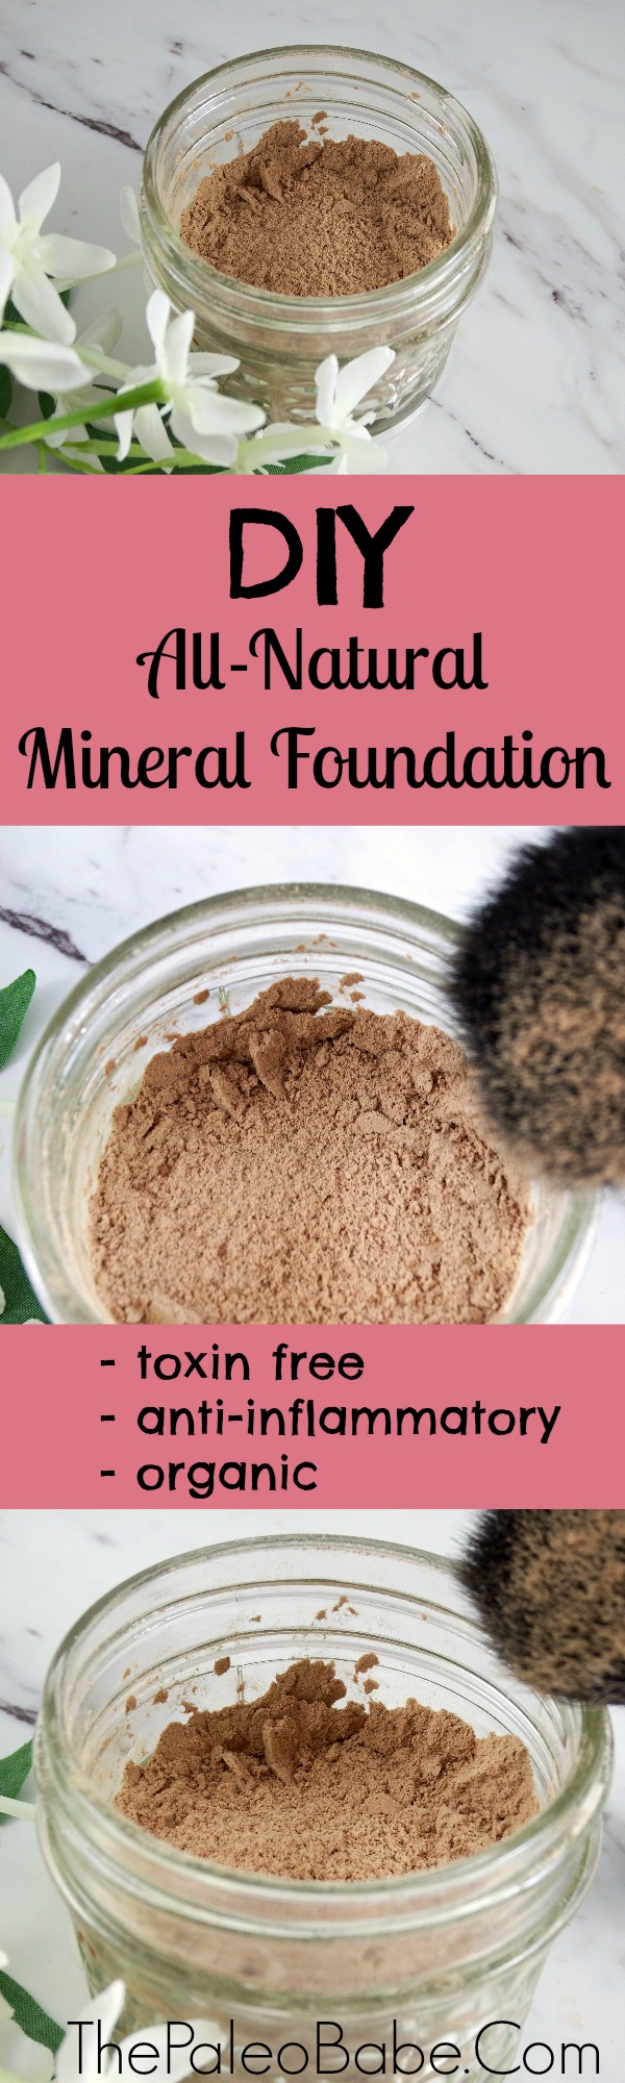 Cool DIY Makeup Hacks for Quick and Easy Beauty Ideas - Make Your Own DIY Natural Non-Toxic Mineral Foundation - How To Fix Broken Makeup, Tips and Tricks for Mascara and Eye Liner, Lipstick and Foundation Tutorials - Fast Do It Yourself Beauty Projects for Women